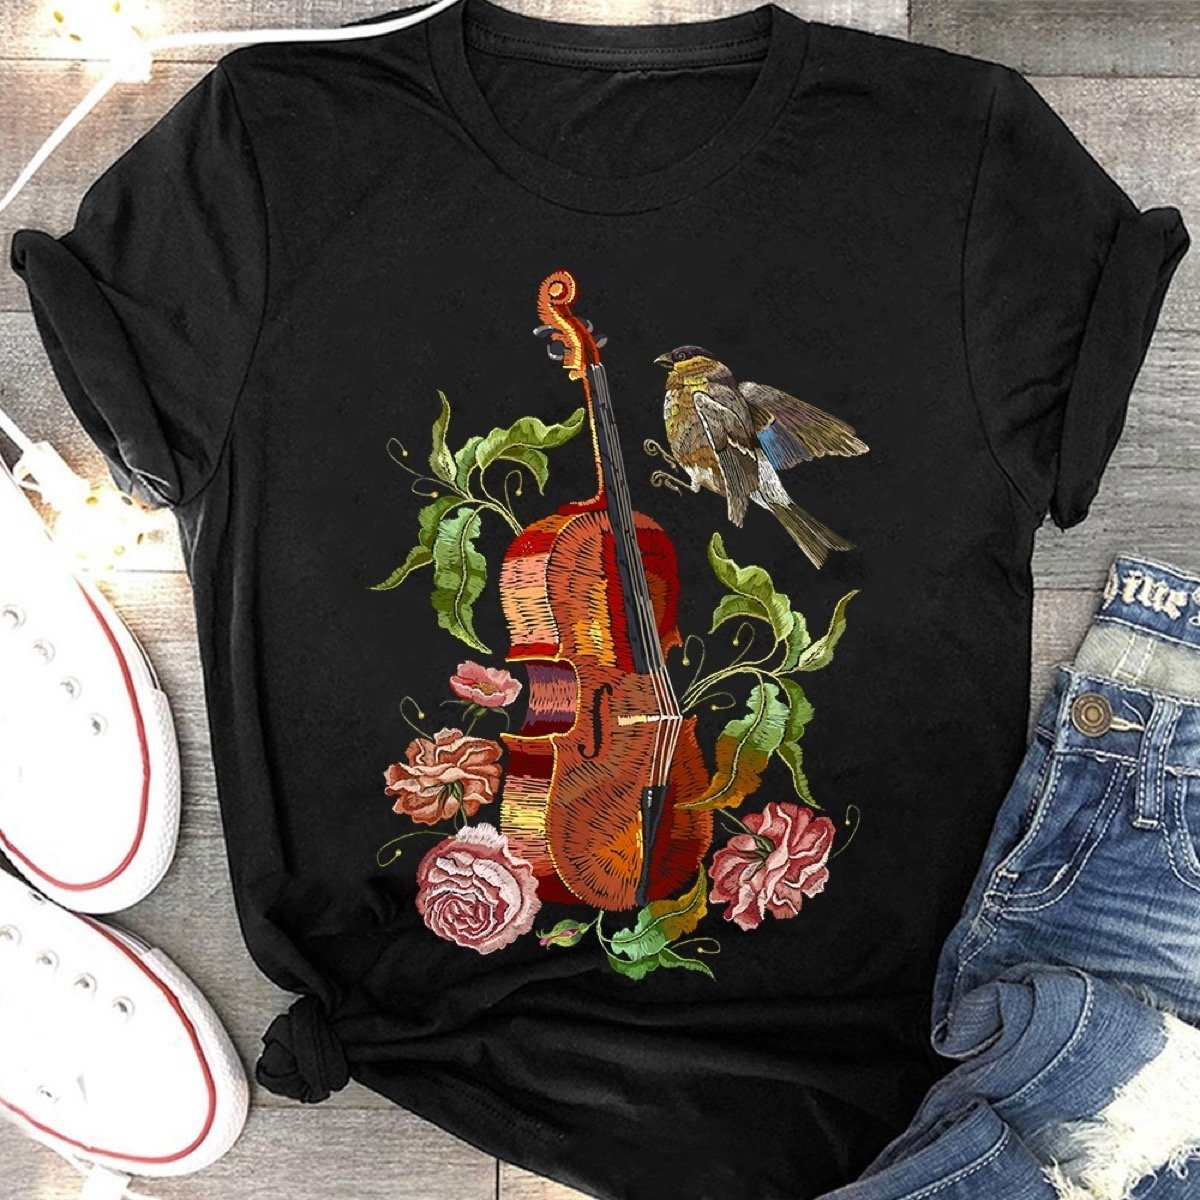 Free as a Bird T-shirt 20